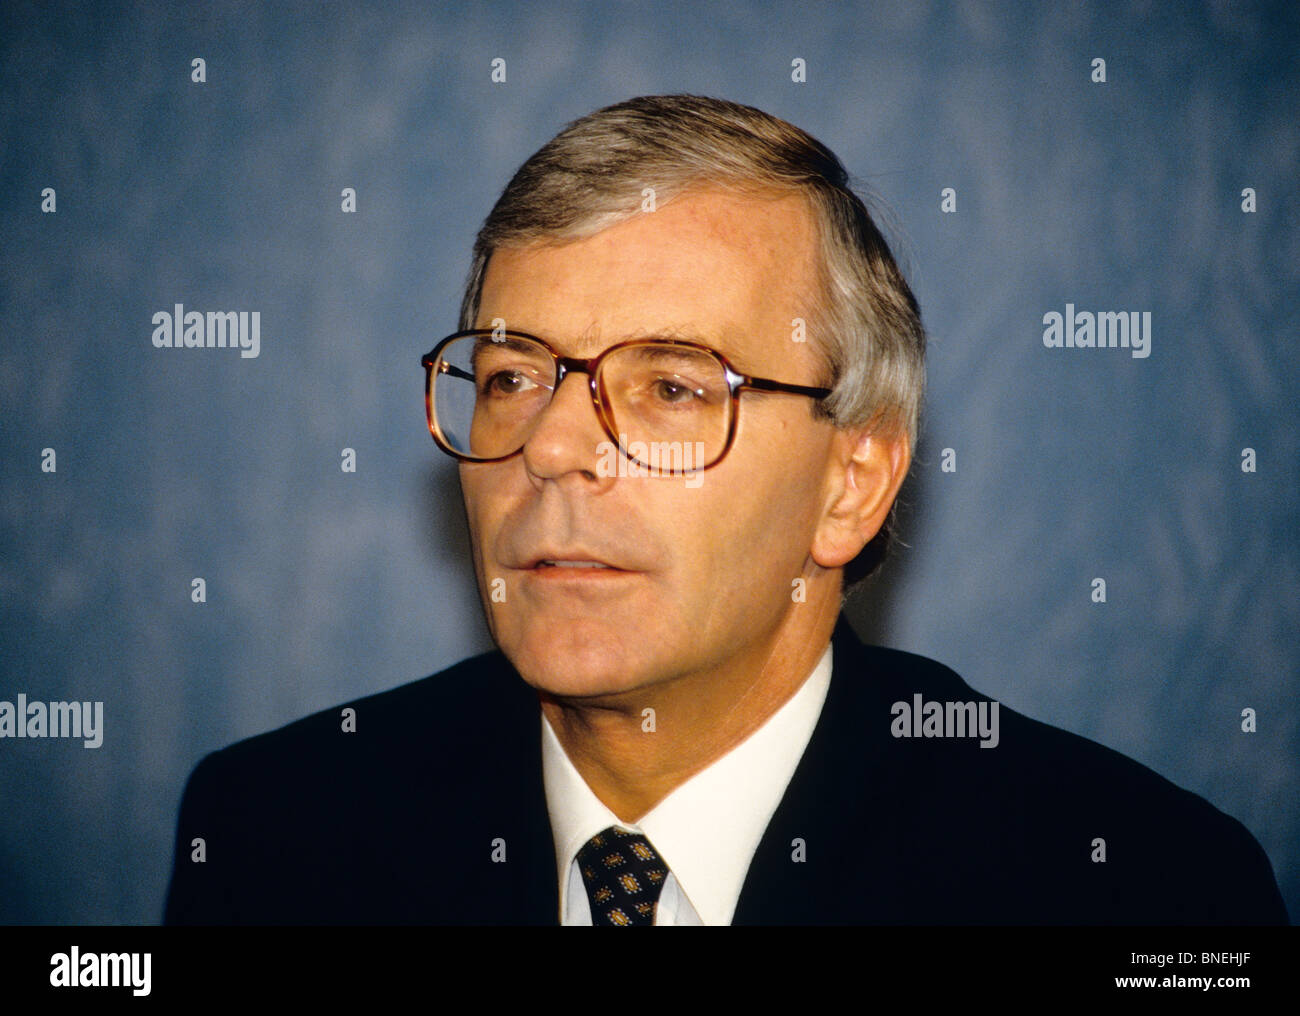 Sir John Major, KG, CH, ACIB (born 29 March 1943) is a British politician, who served as Prime Minister of the United - Stock Image